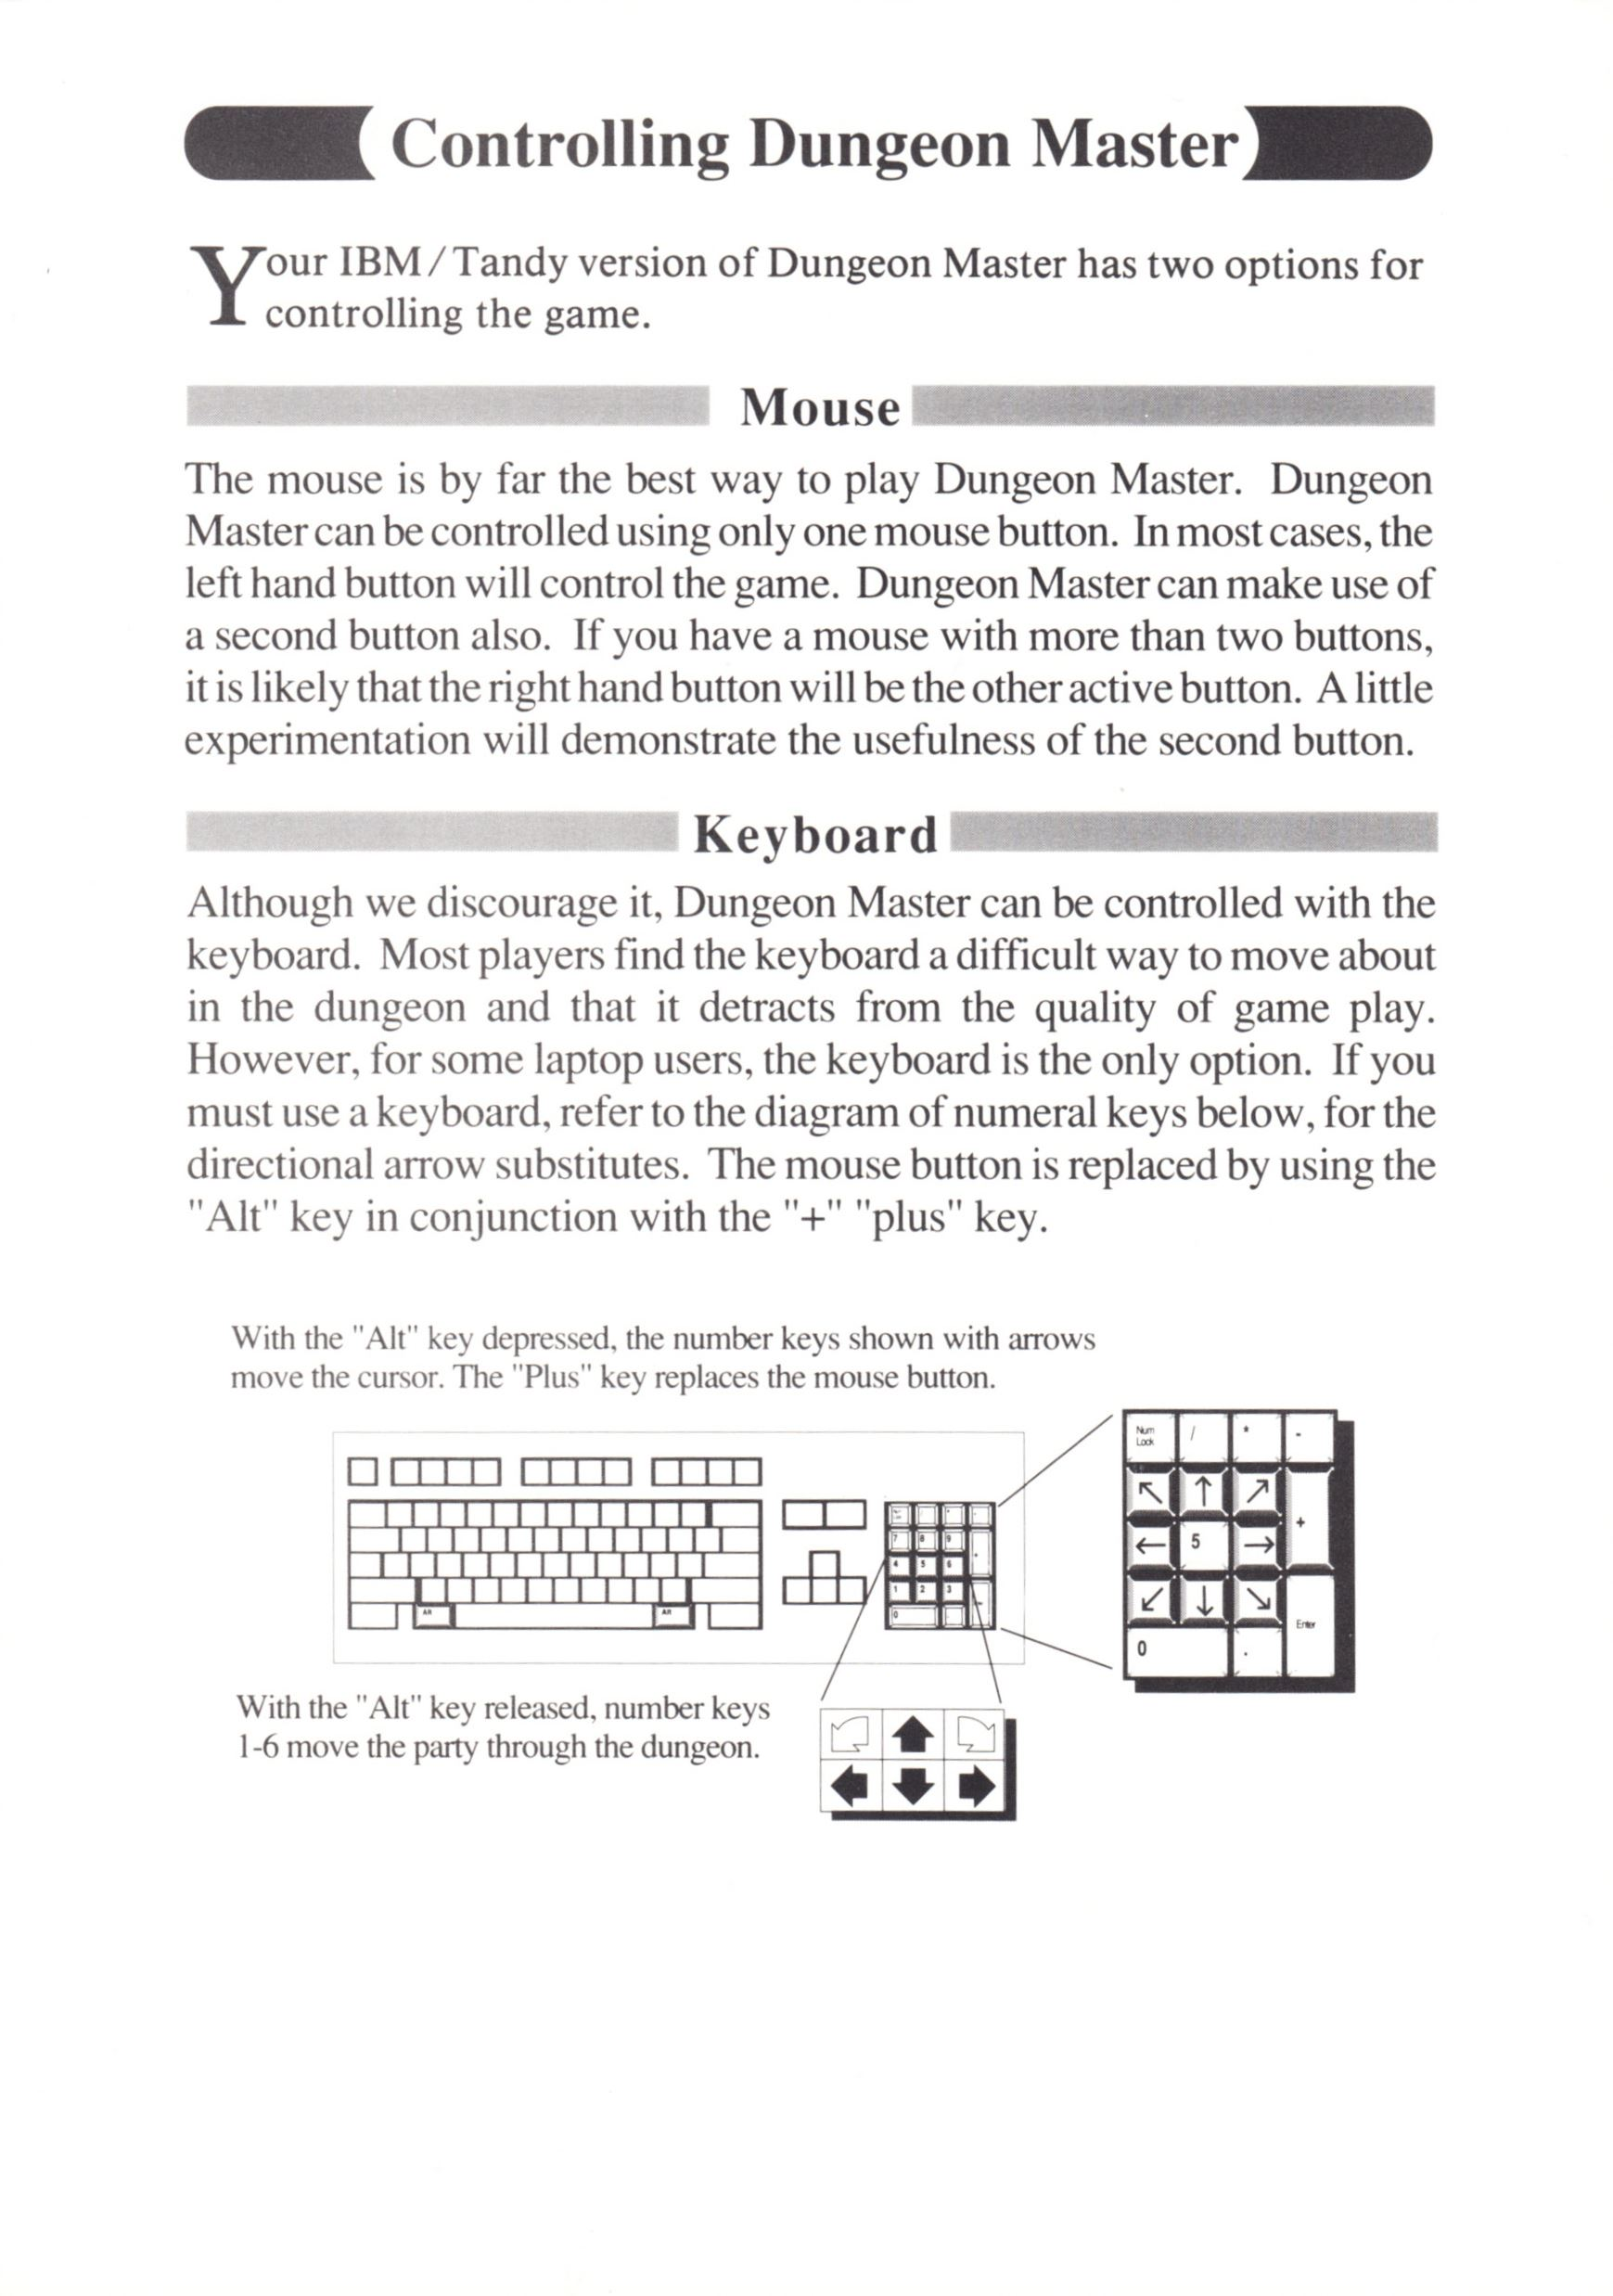 Game - Dungeon Master - UK - PC - Psygnosis - Quick Start Guide - Page 003 - Scan